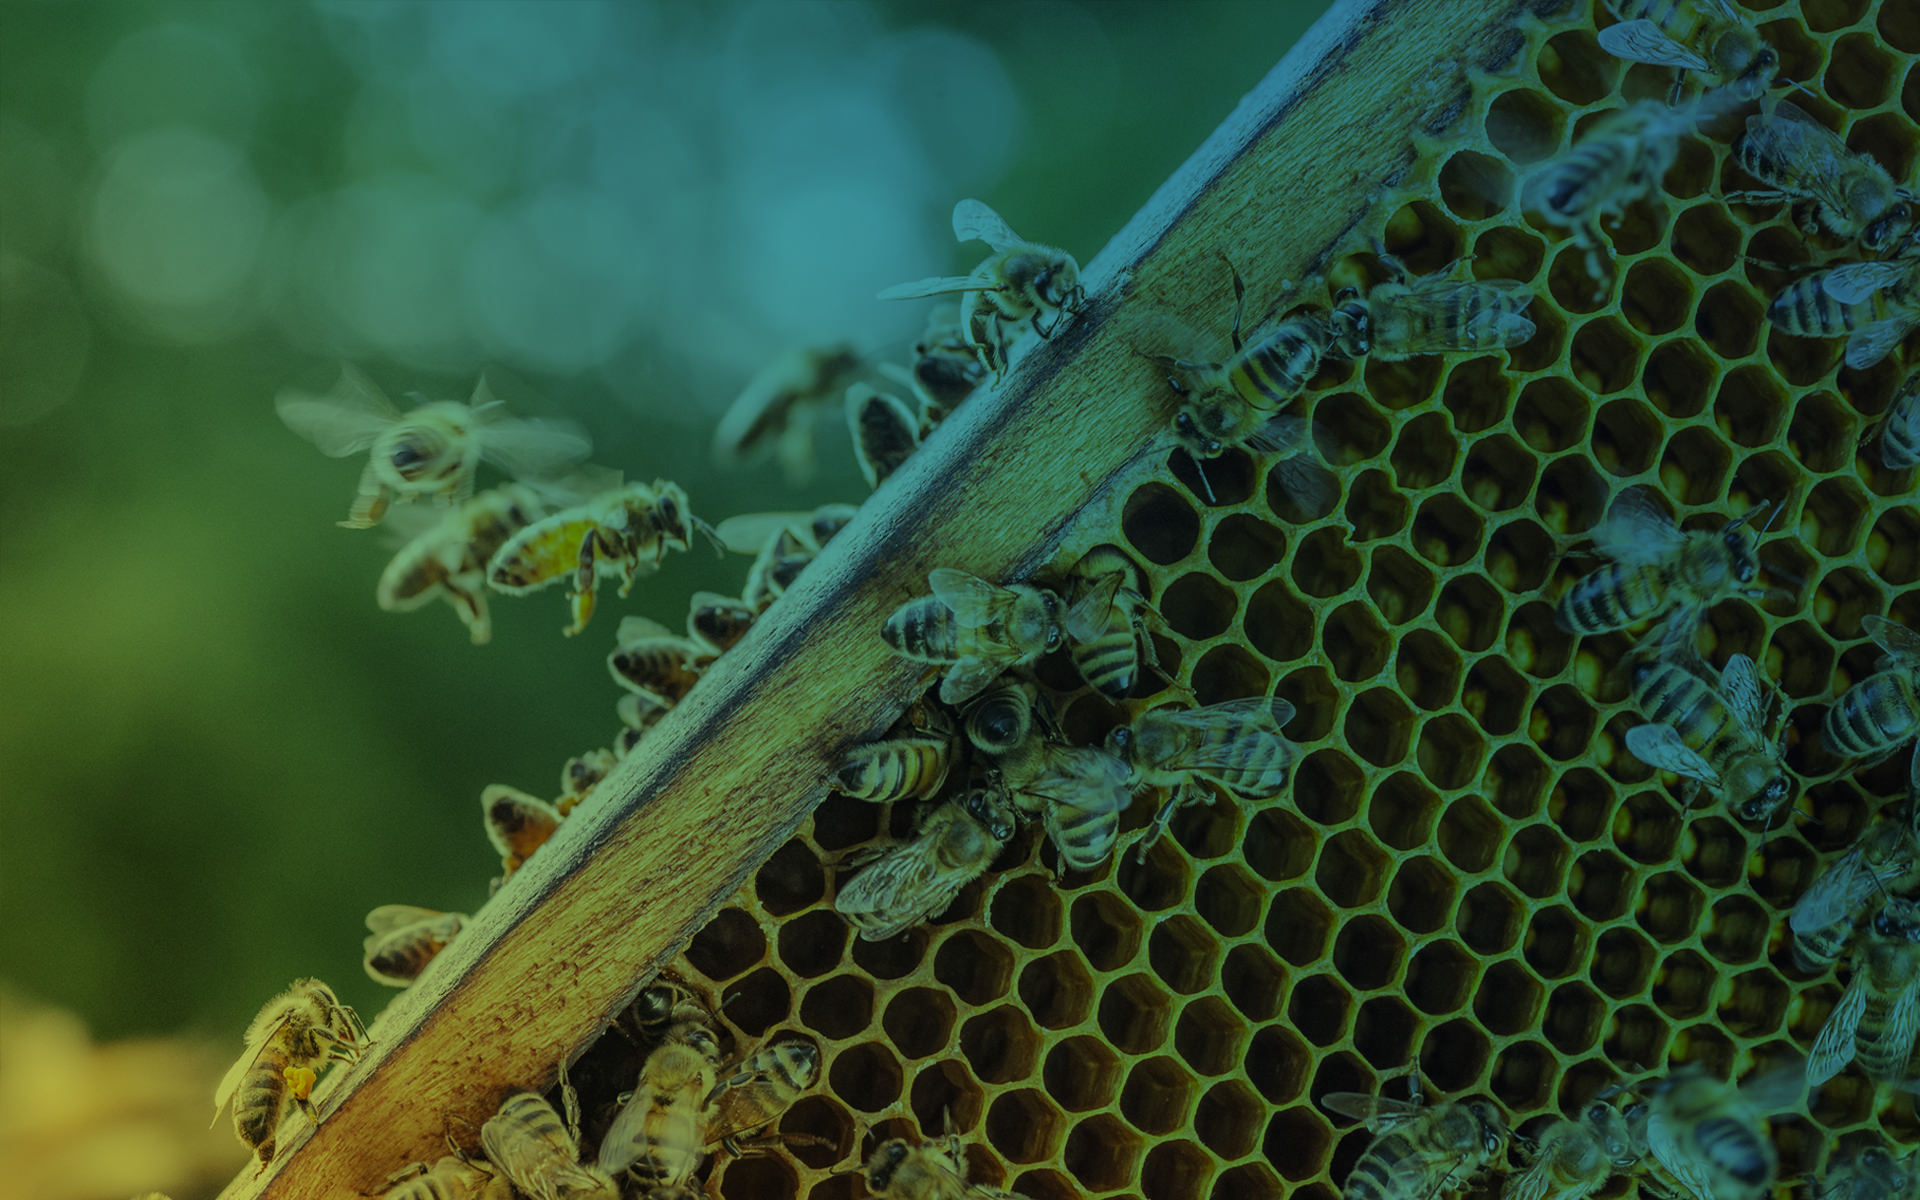 Acea and the biomonitoring project with Urbees